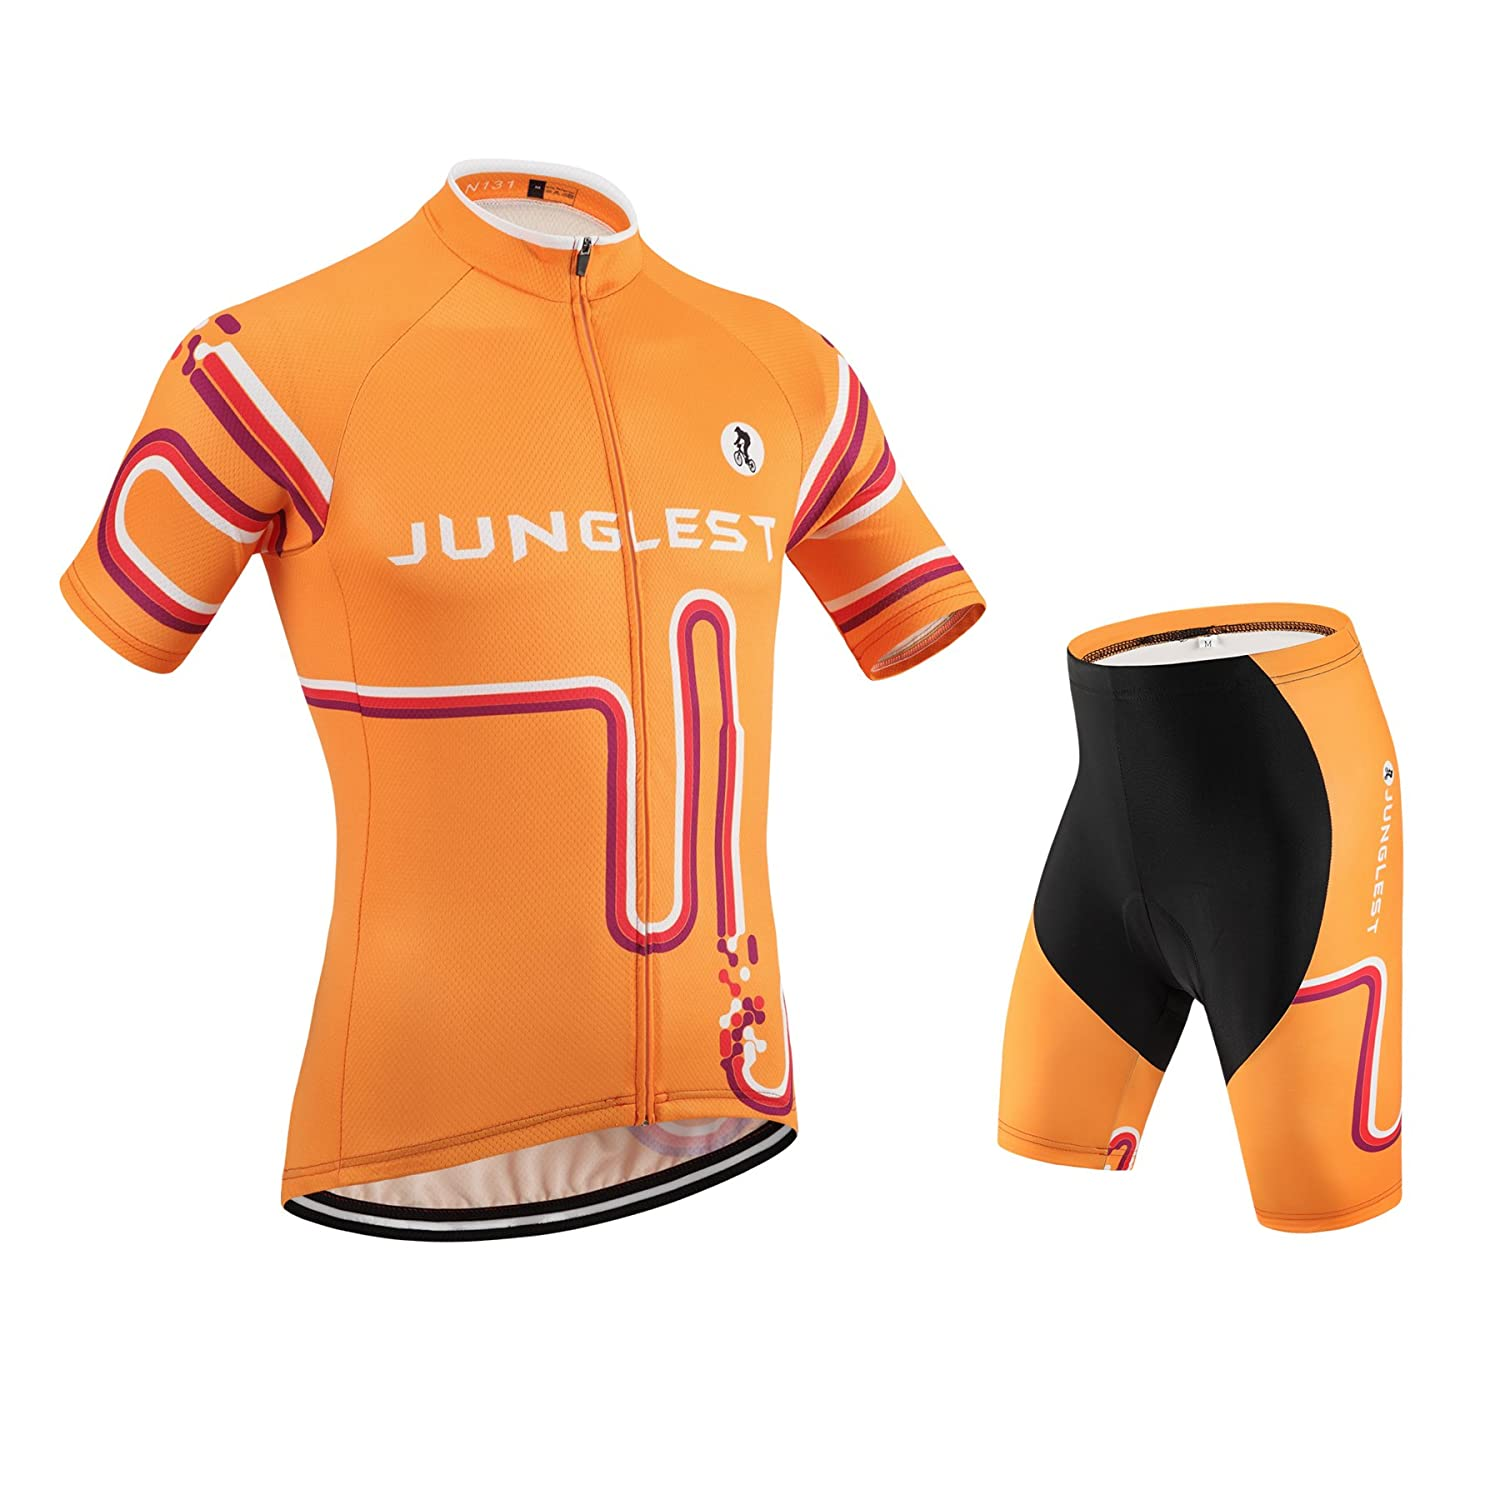 Cycling Jersey Set Wen半袖( S ~ 5 X L、オプション:よだれかけ、3dパッド) n131 B01BSZGED2 (General pad)(Chest 50-53inchs)|種類: セット 種類: セット (General pad)(Chest 50-53inchs)